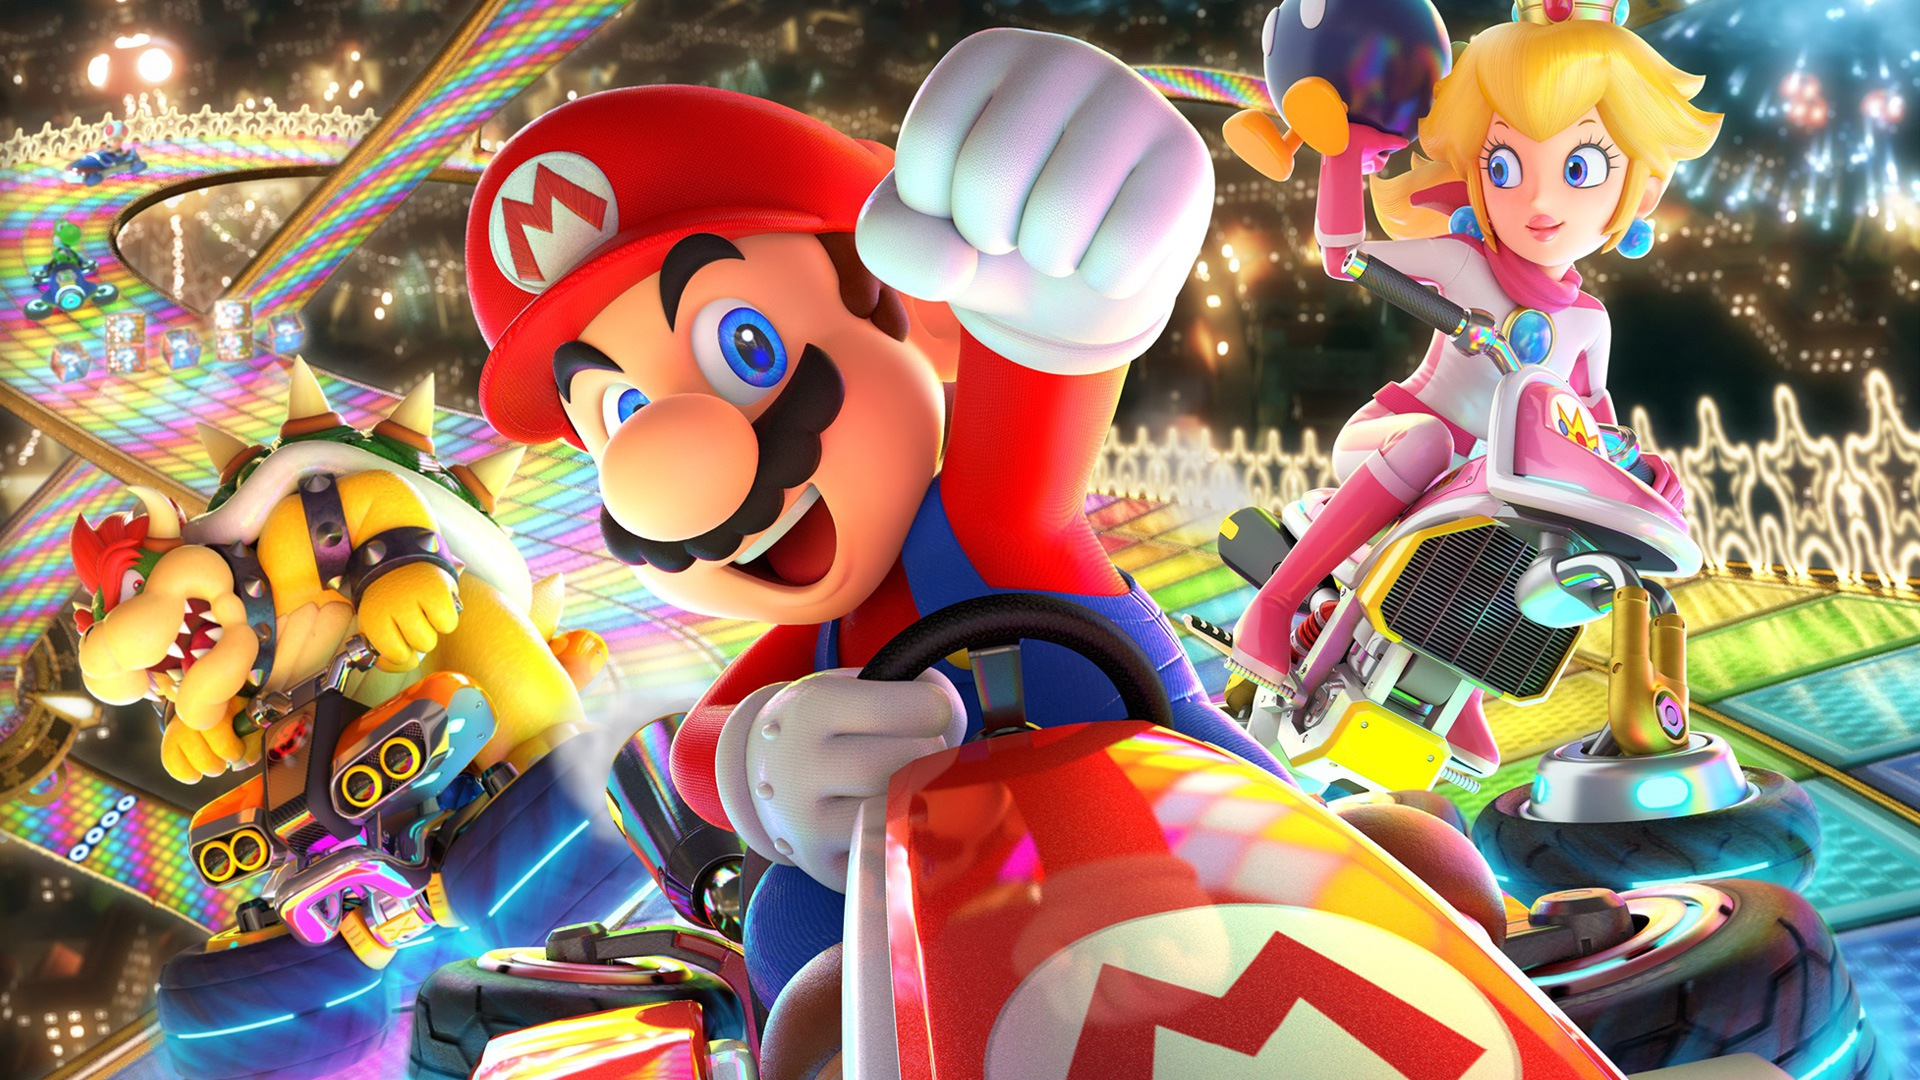 Mario Kart 8 Deluxe: The Best Ways To Get Coins | Infinite Coin